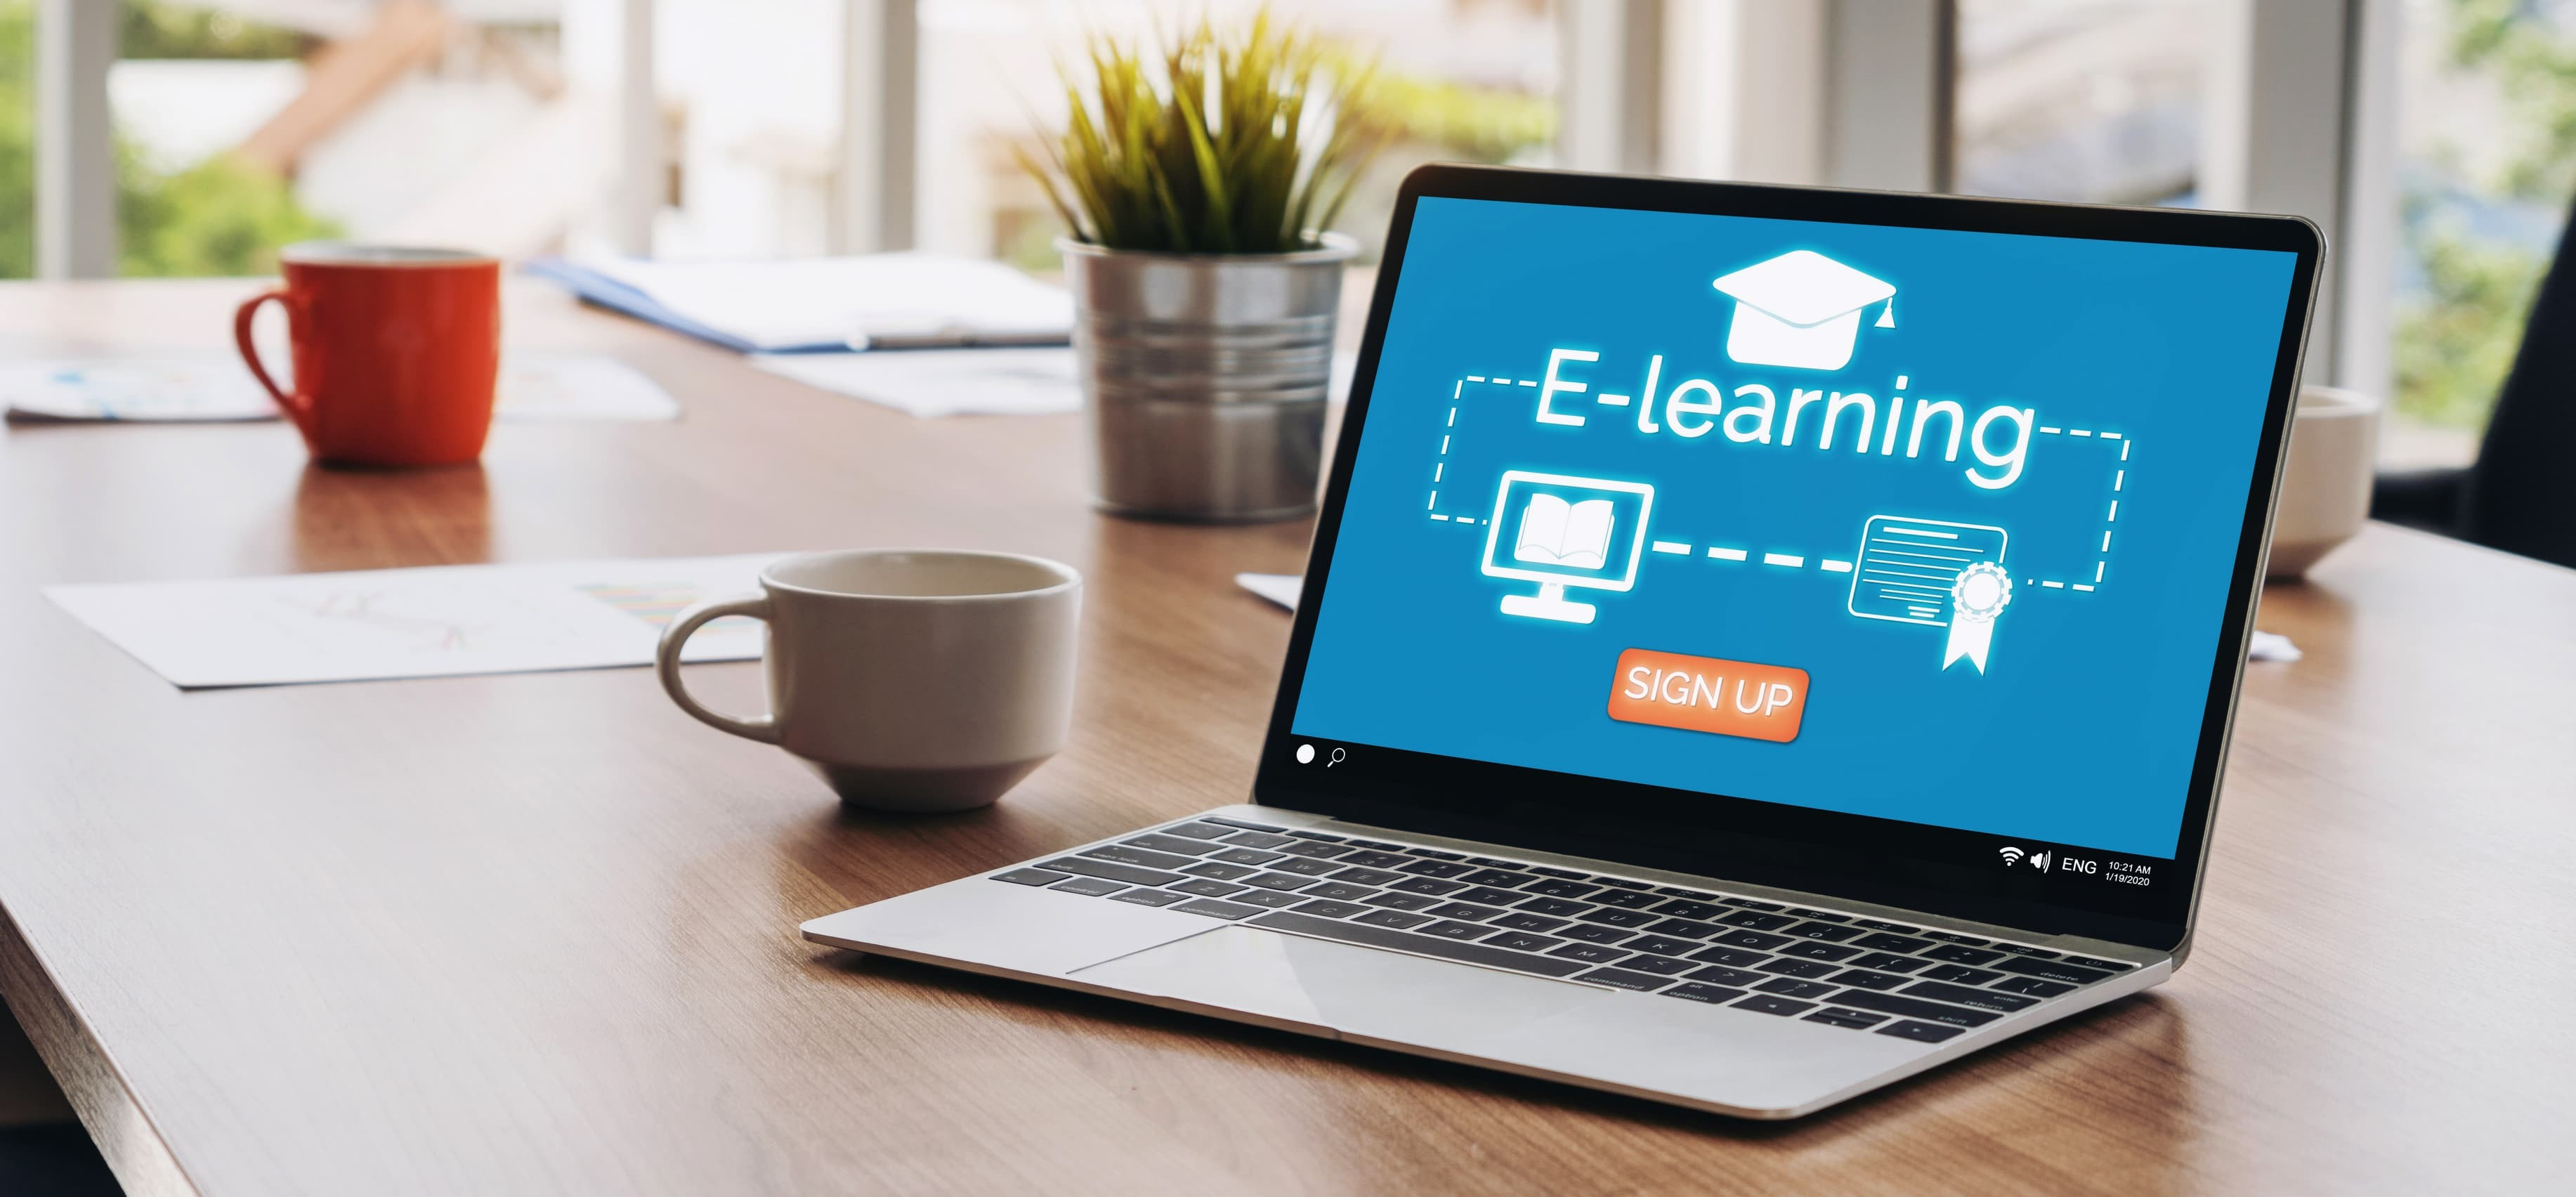 E-learning by Monneret Formation Conseil